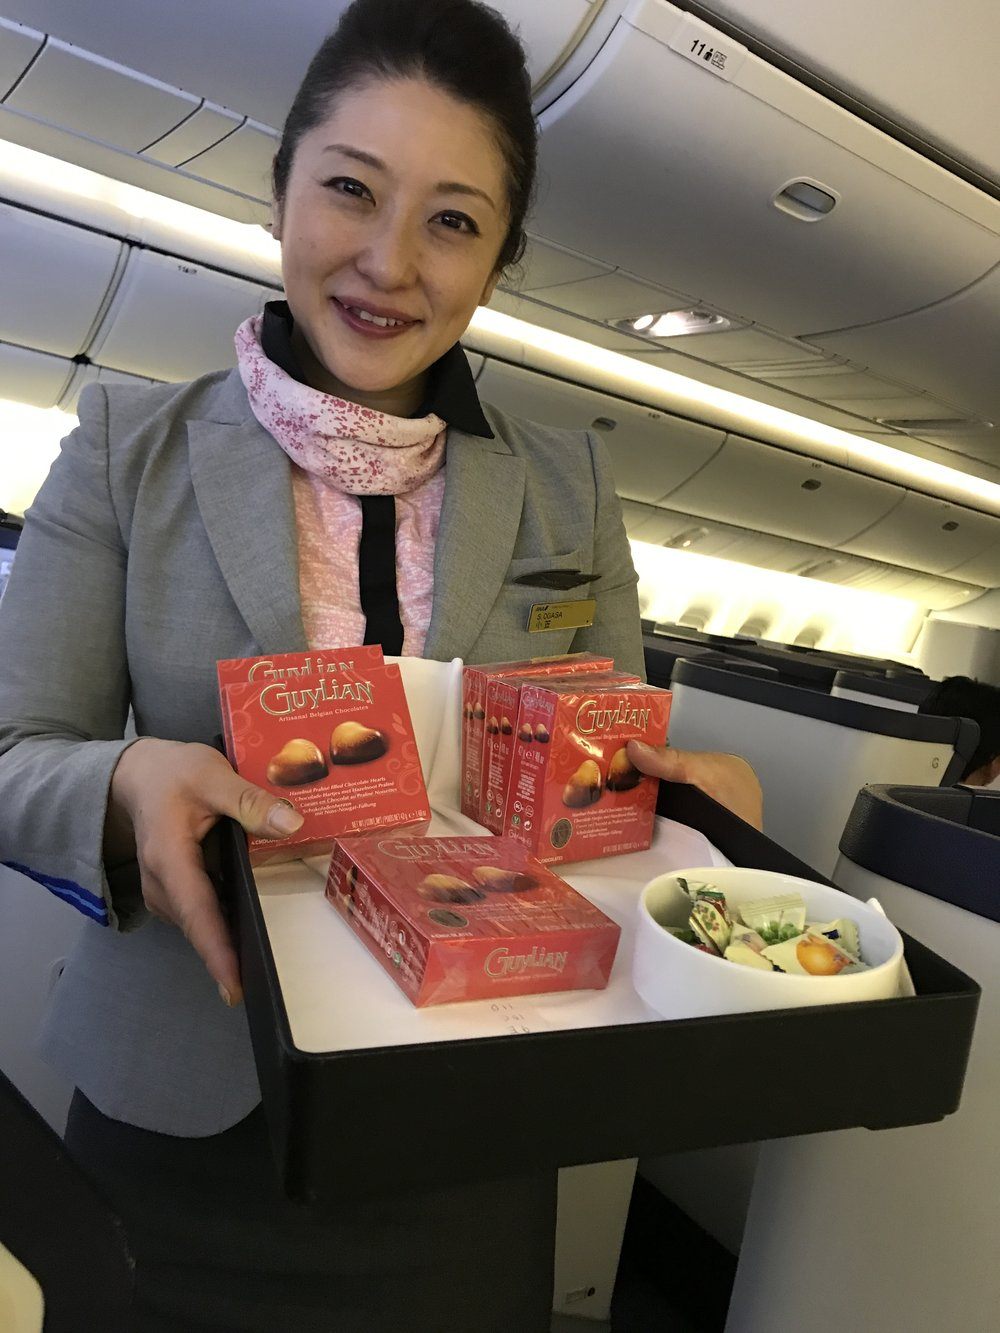 Photo: Party gift of artisanal Belgian chocolates presented by ANA Flight Attendant Ms. Ogasa. Image by We Get Around Chief Photographer Dan Smigrod.